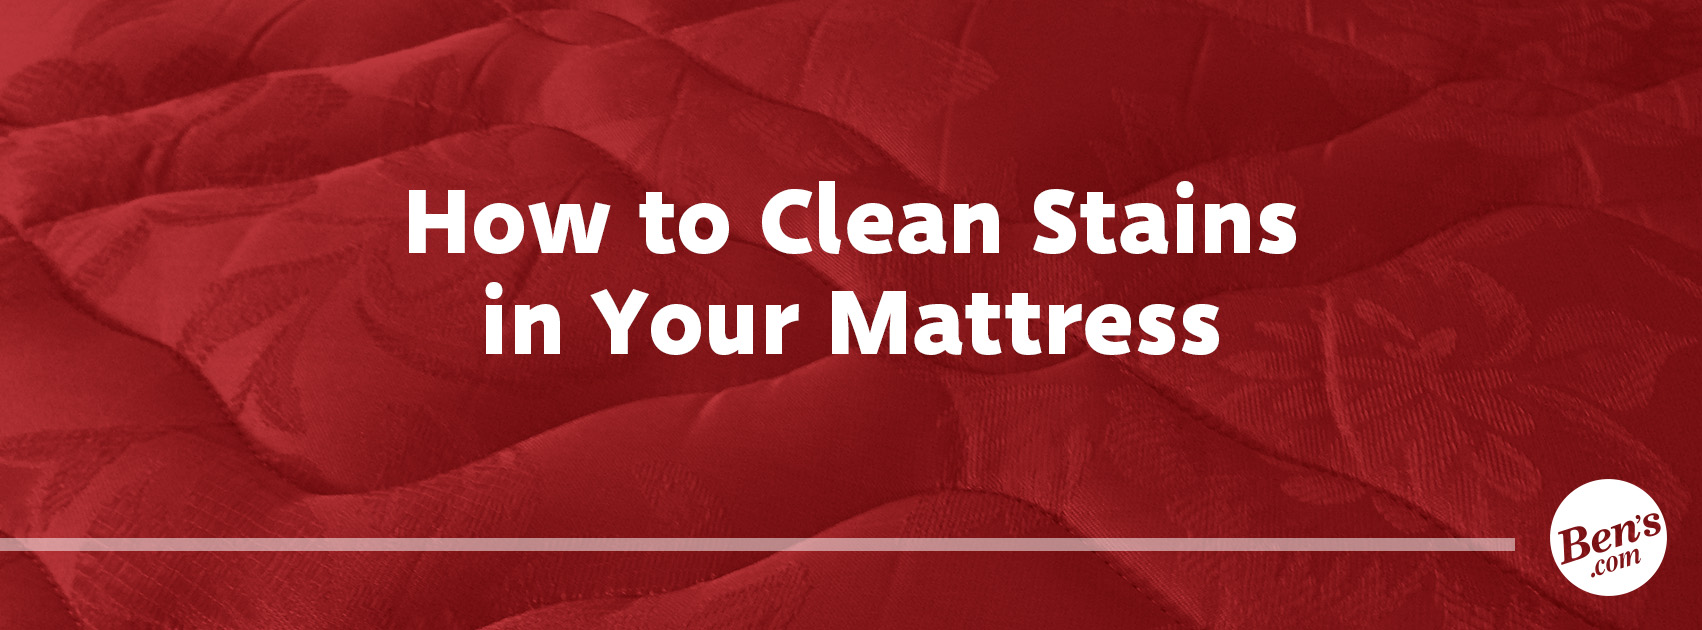 06-30_7_How_to_Clean_Stains